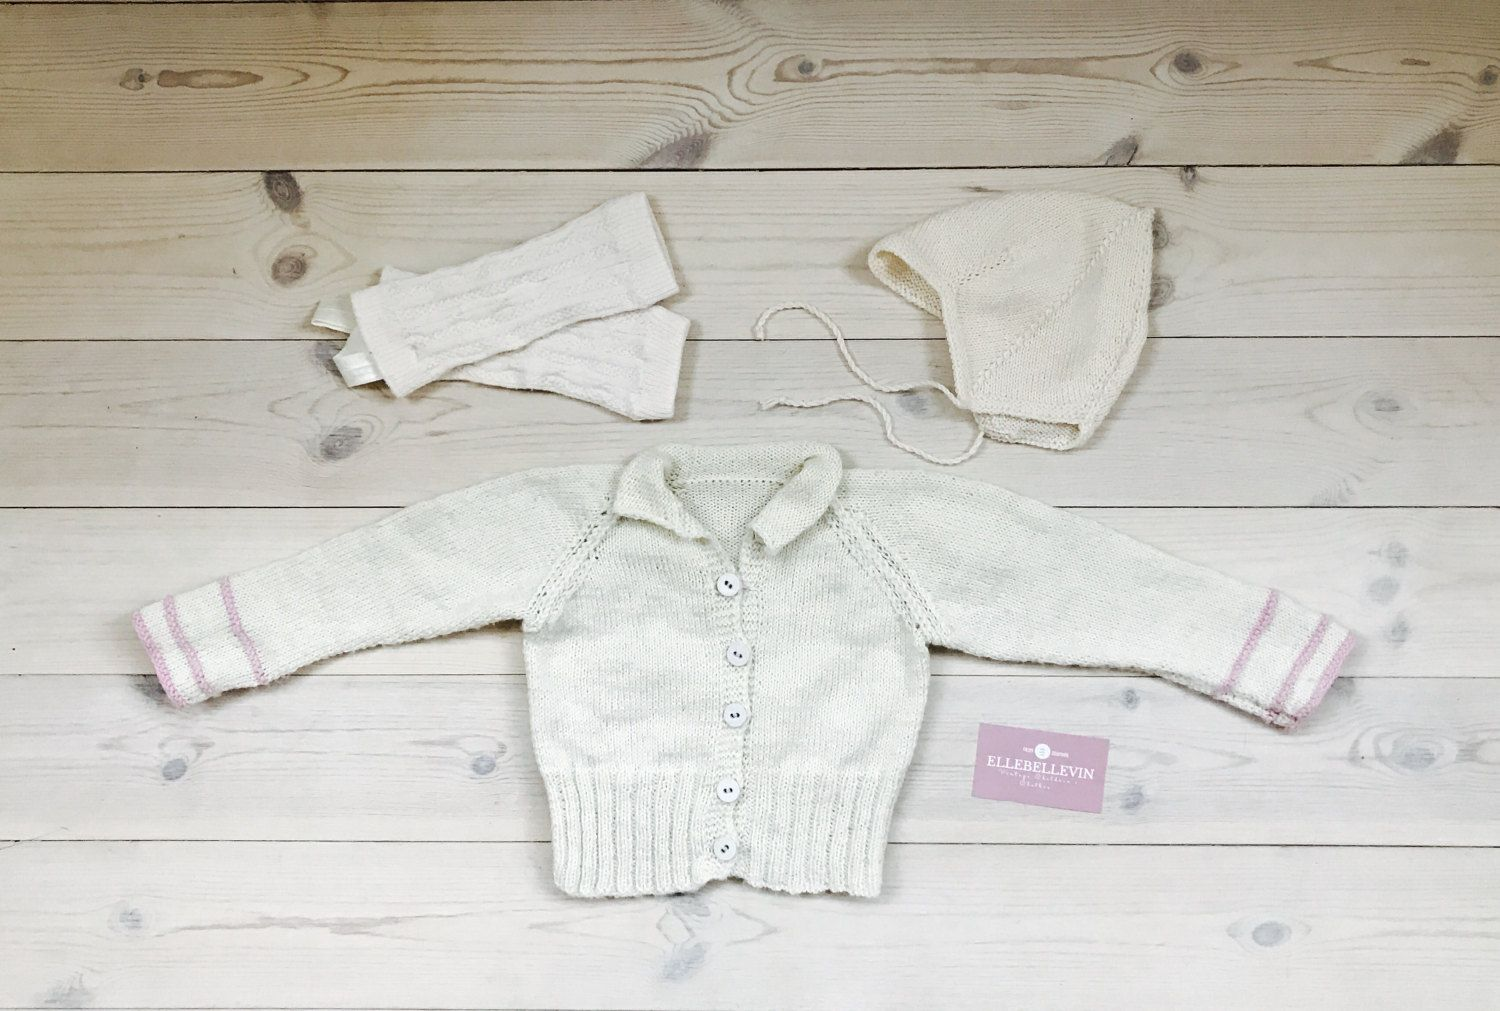 Knitted baby cardigan 3,6 months, Vintage baby girl jumper